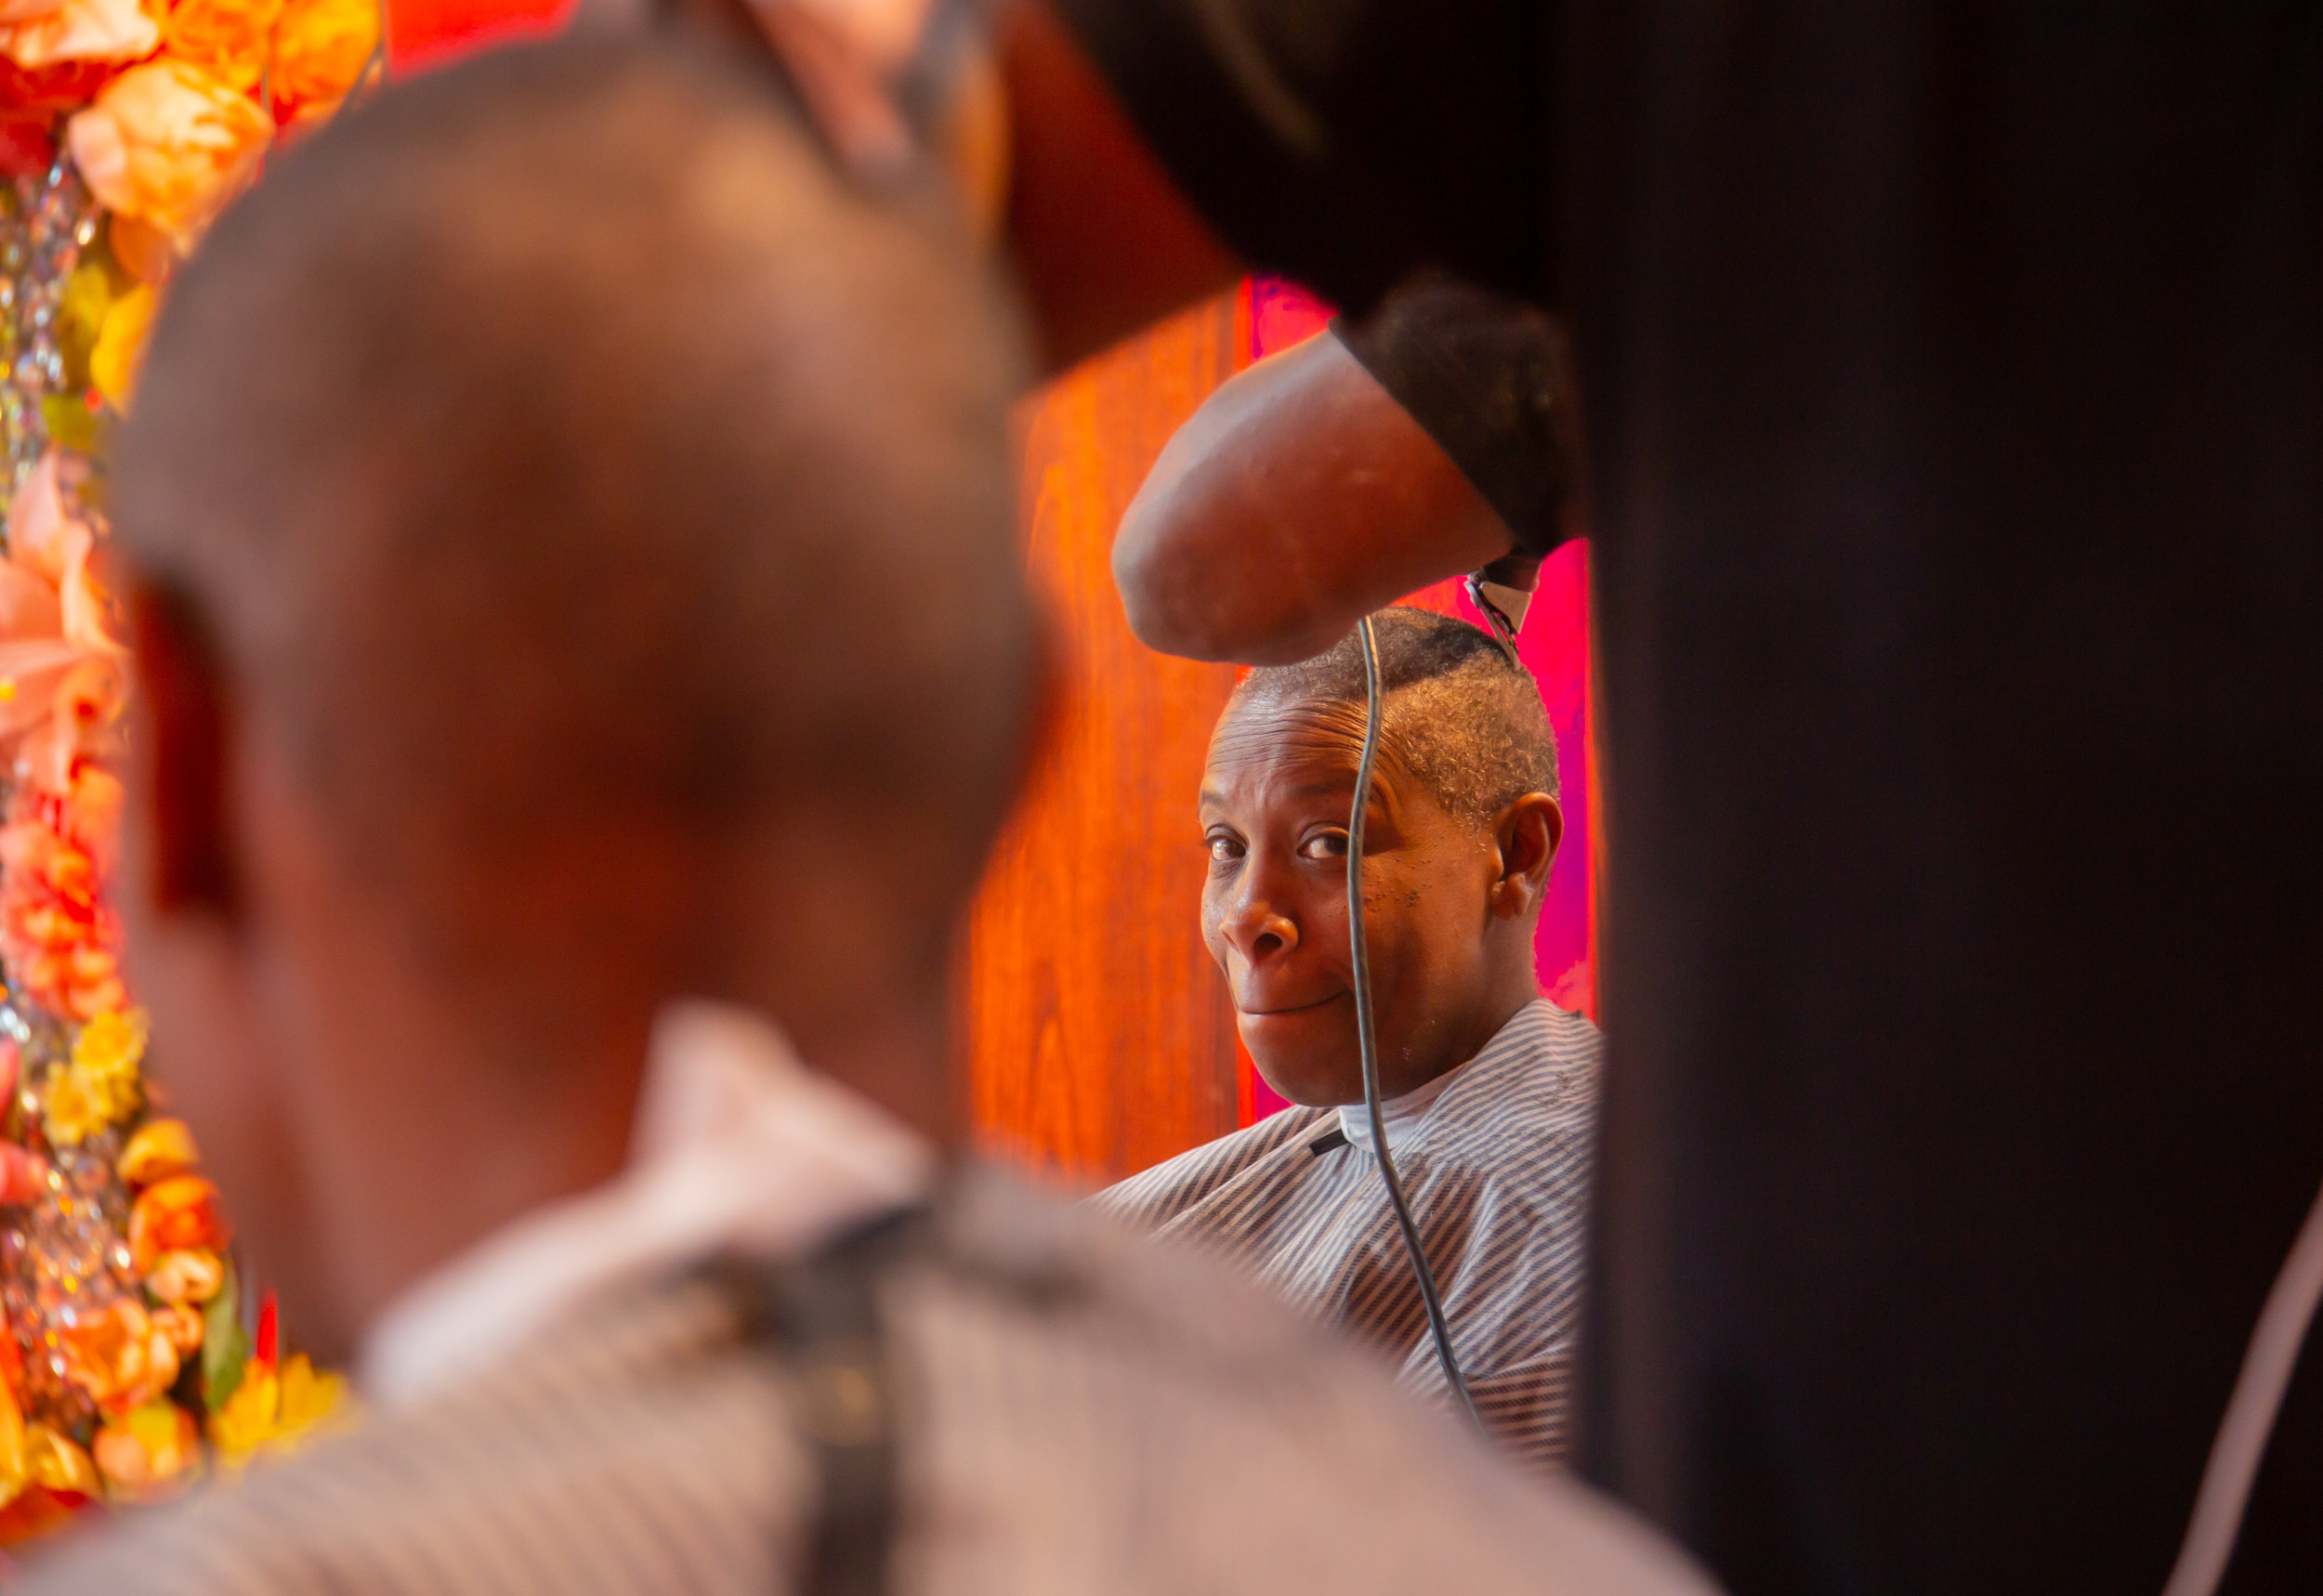 Barbershops Can Be Fraught For People Who Aren't Straight Cis Men - DCist, June 17, 2019